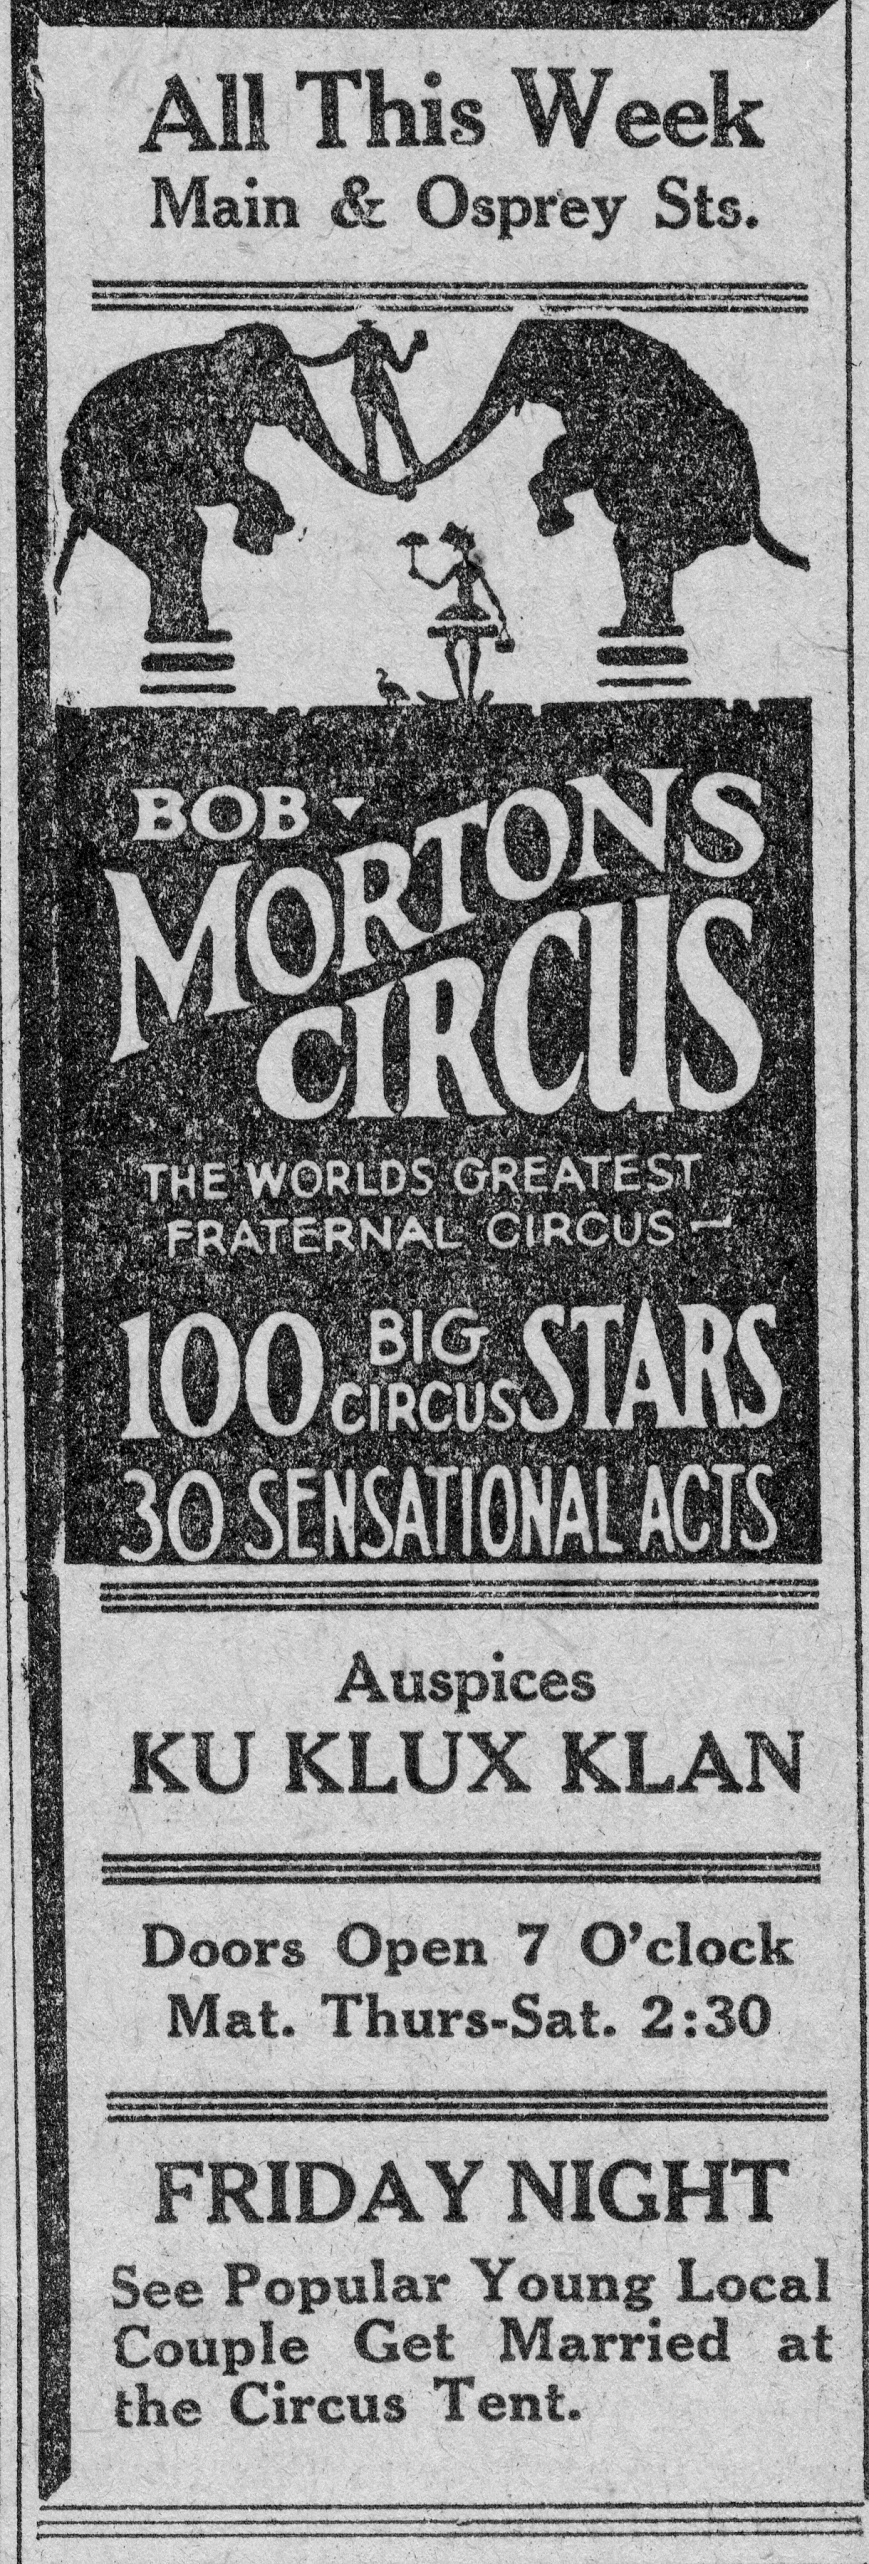 Sarasota is well known for its circus traditions, but few are aware of the Ku Klux Klan's influence on Sarasota's circus history. Sarasota's branch of the Ku Klux Klan sponsored a circus in 1926.  The circus celebration involved nominating a Miss Sarasota and a costumed march down Main Street.  The parade members (354 men and 82 women) were not dressed in traditional circus garb; they were local Klan members and were outfitted in white Klan hoods and robes.  Giant crosses set ablaze led the parade festivities.